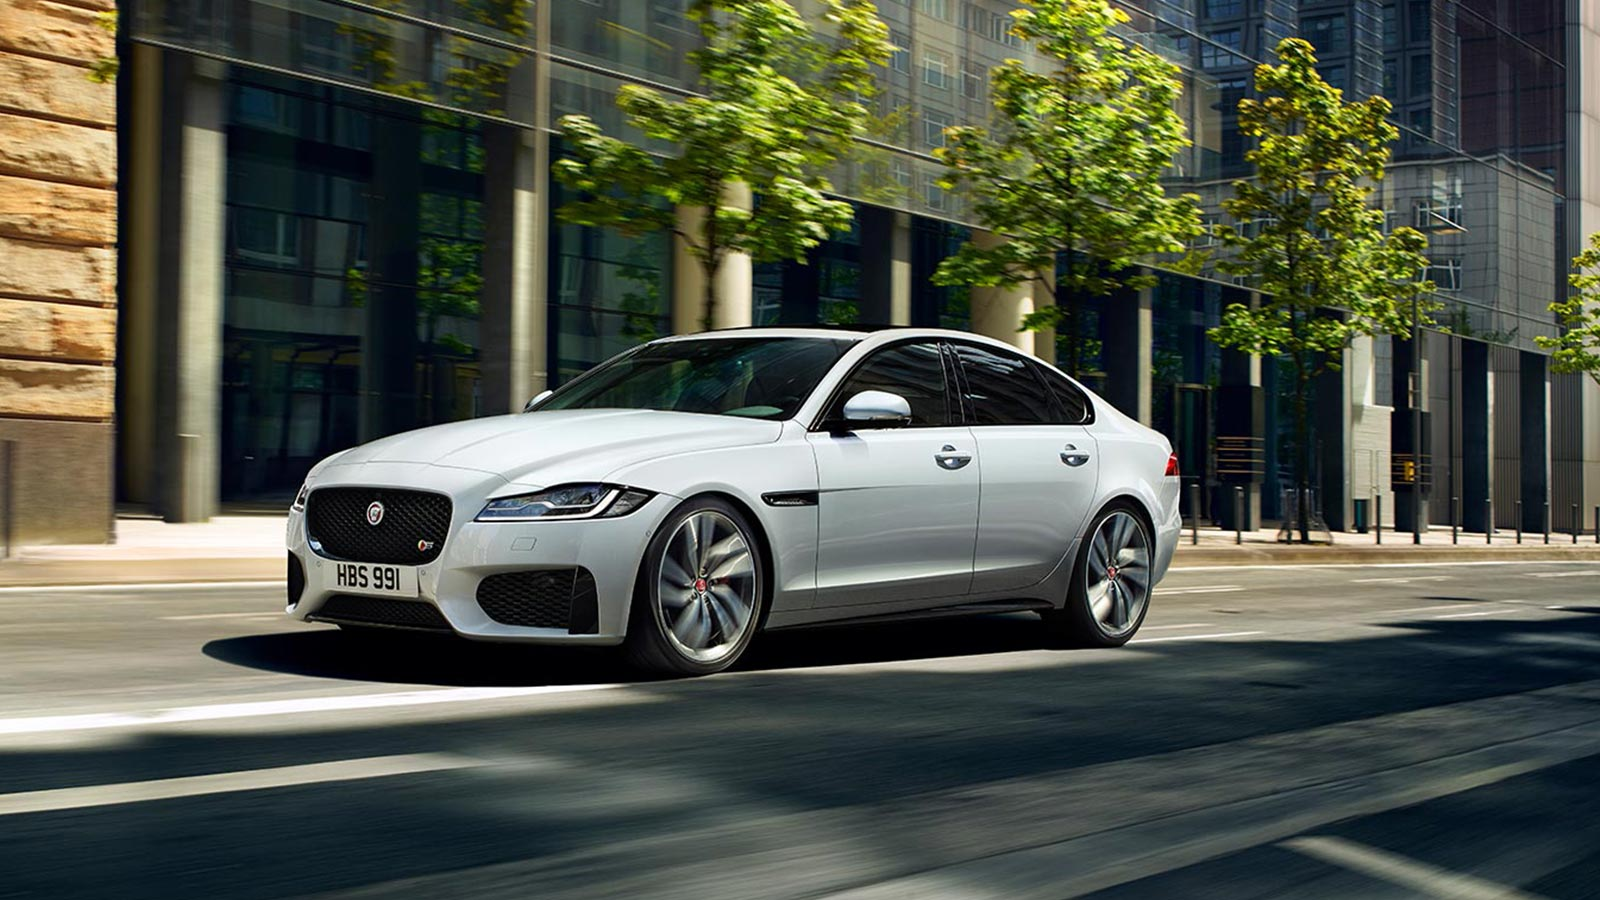 Jaguar XF 2.0d (180) Chequered Flag SPECIAL EDITIONS image 11